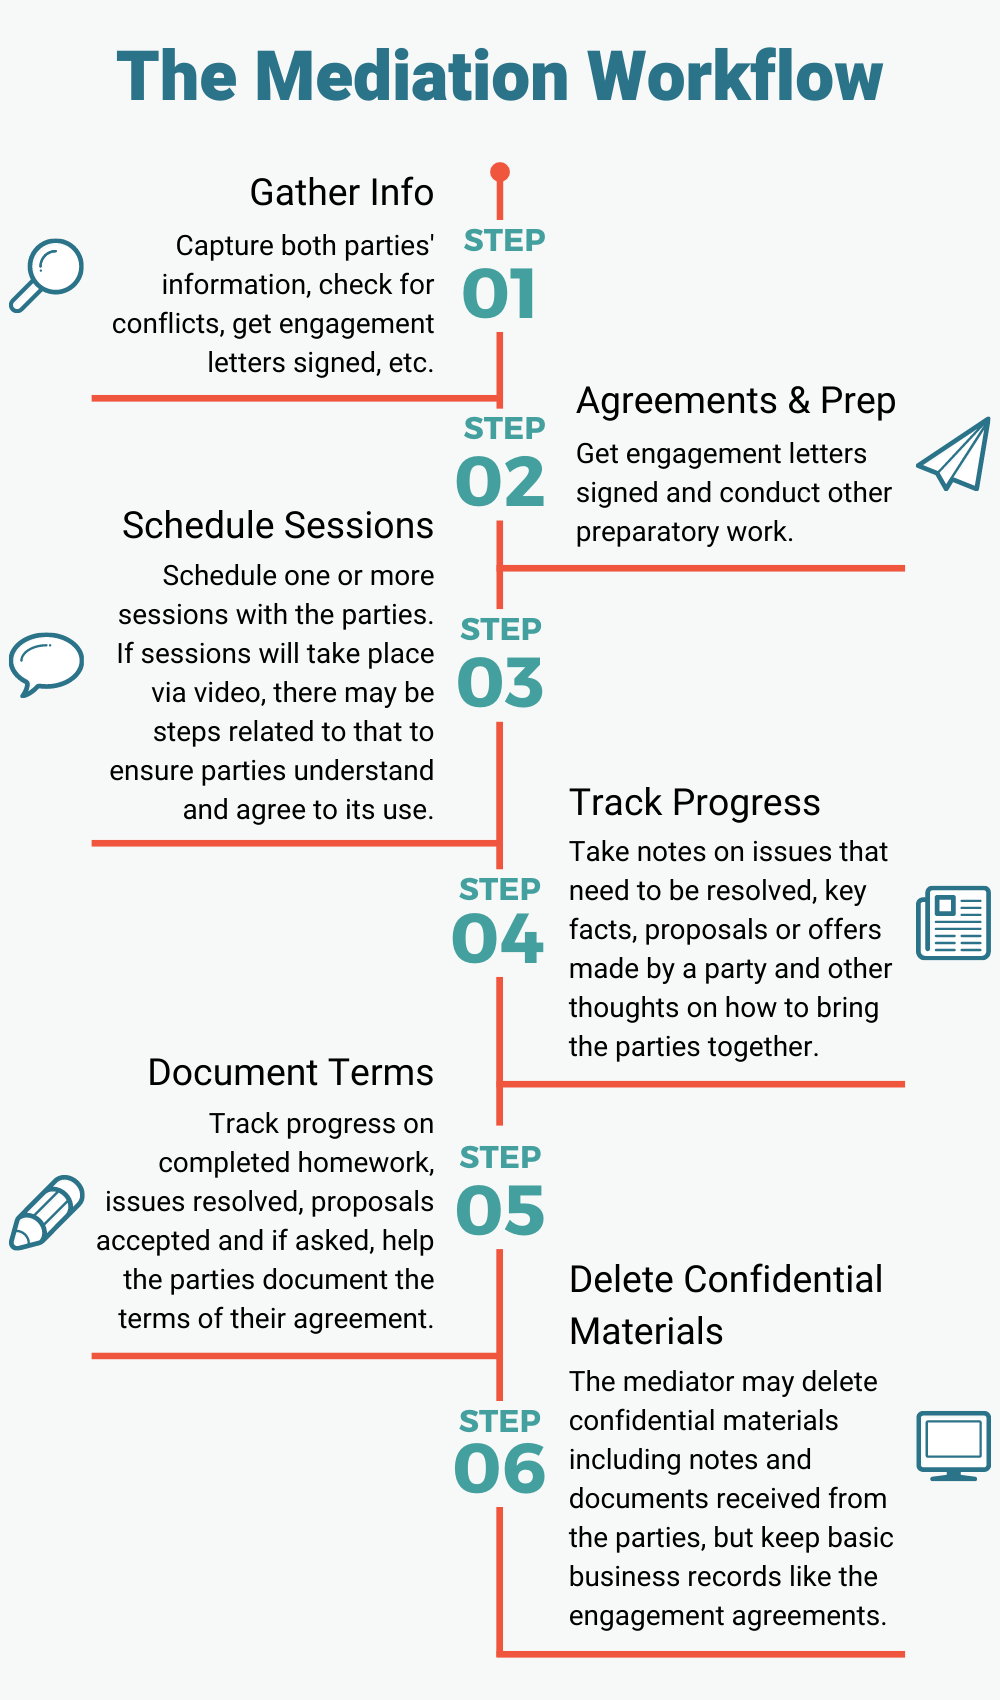 Have an organized mediation practice with the mediation workflow - top mediation organization tips